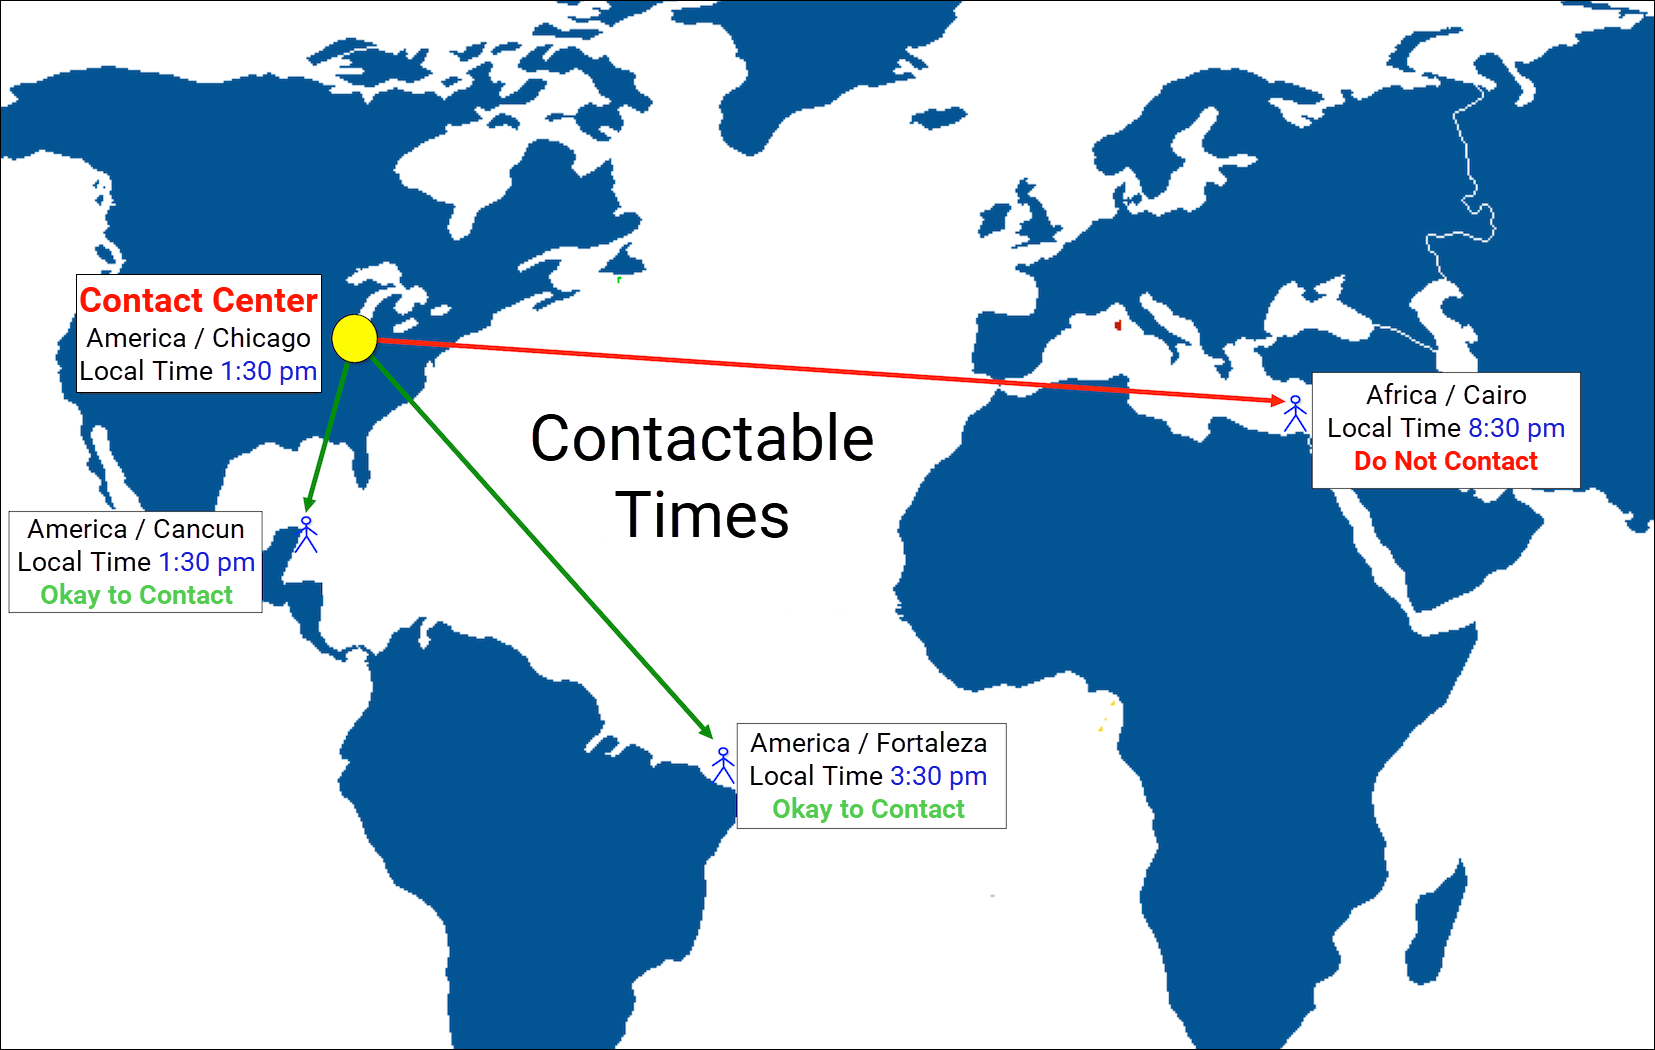 Figure shows world map of callable times